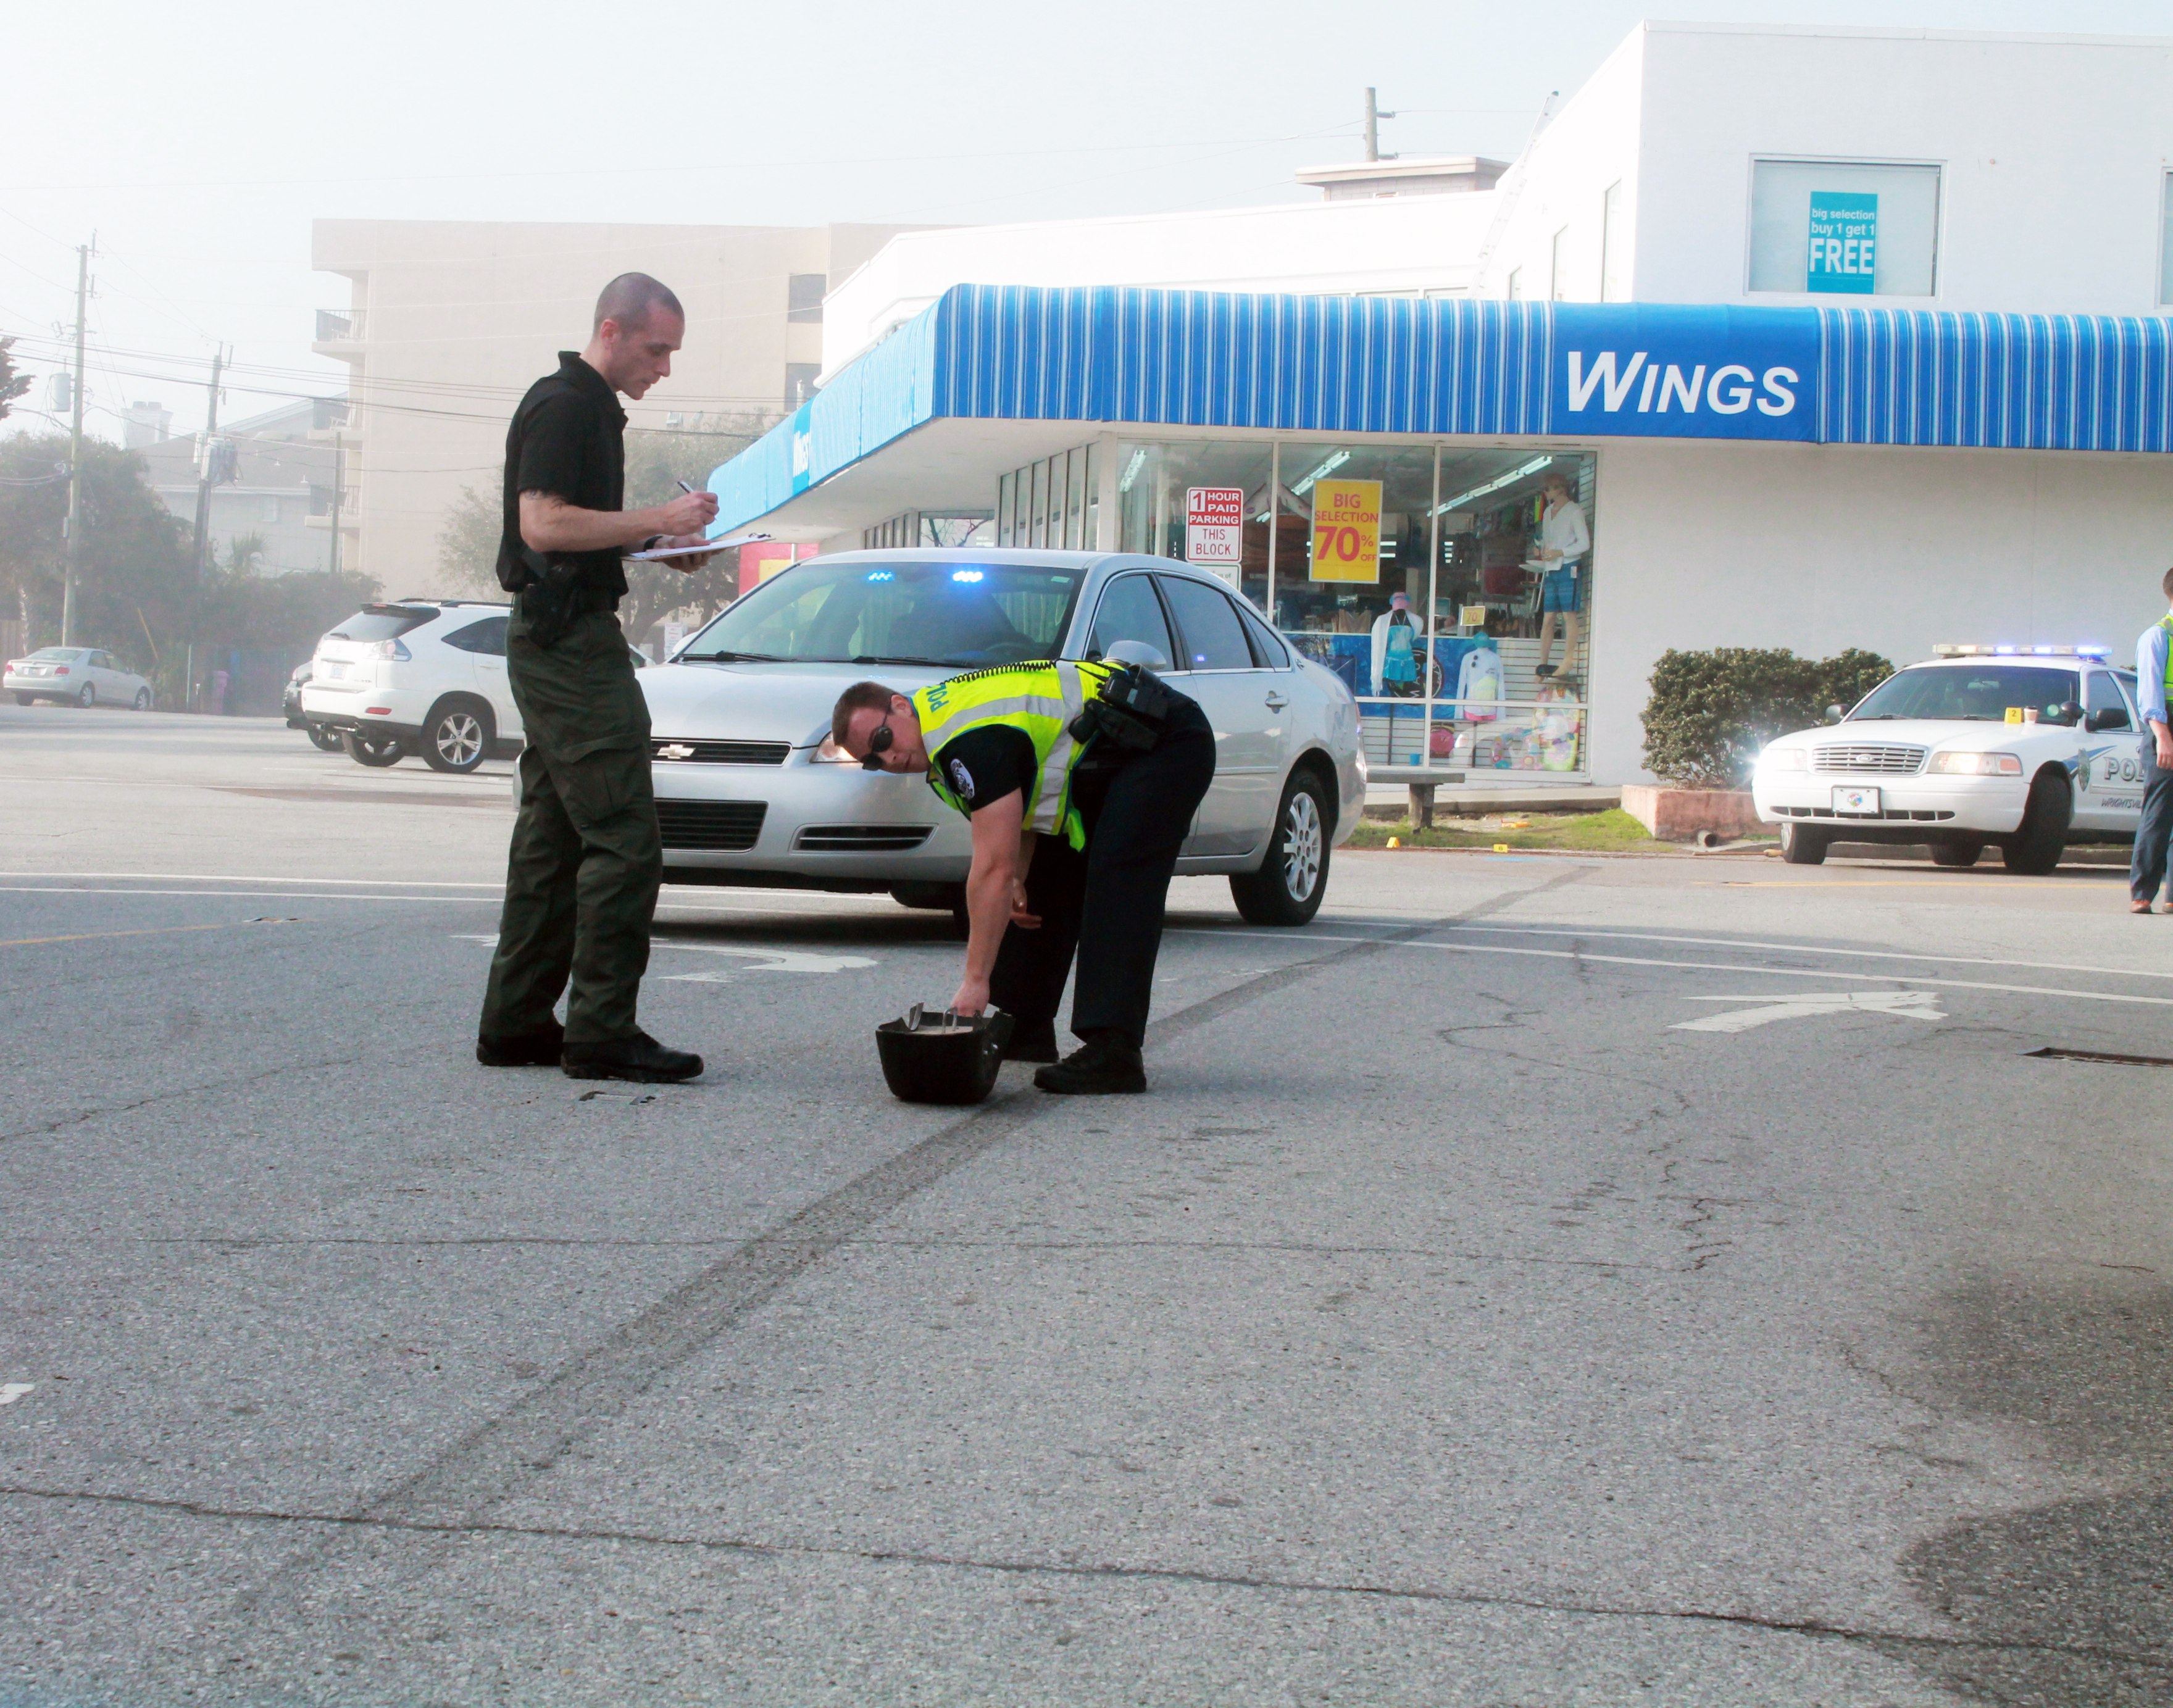 Fleeing driver injures three, charged with DWI by police